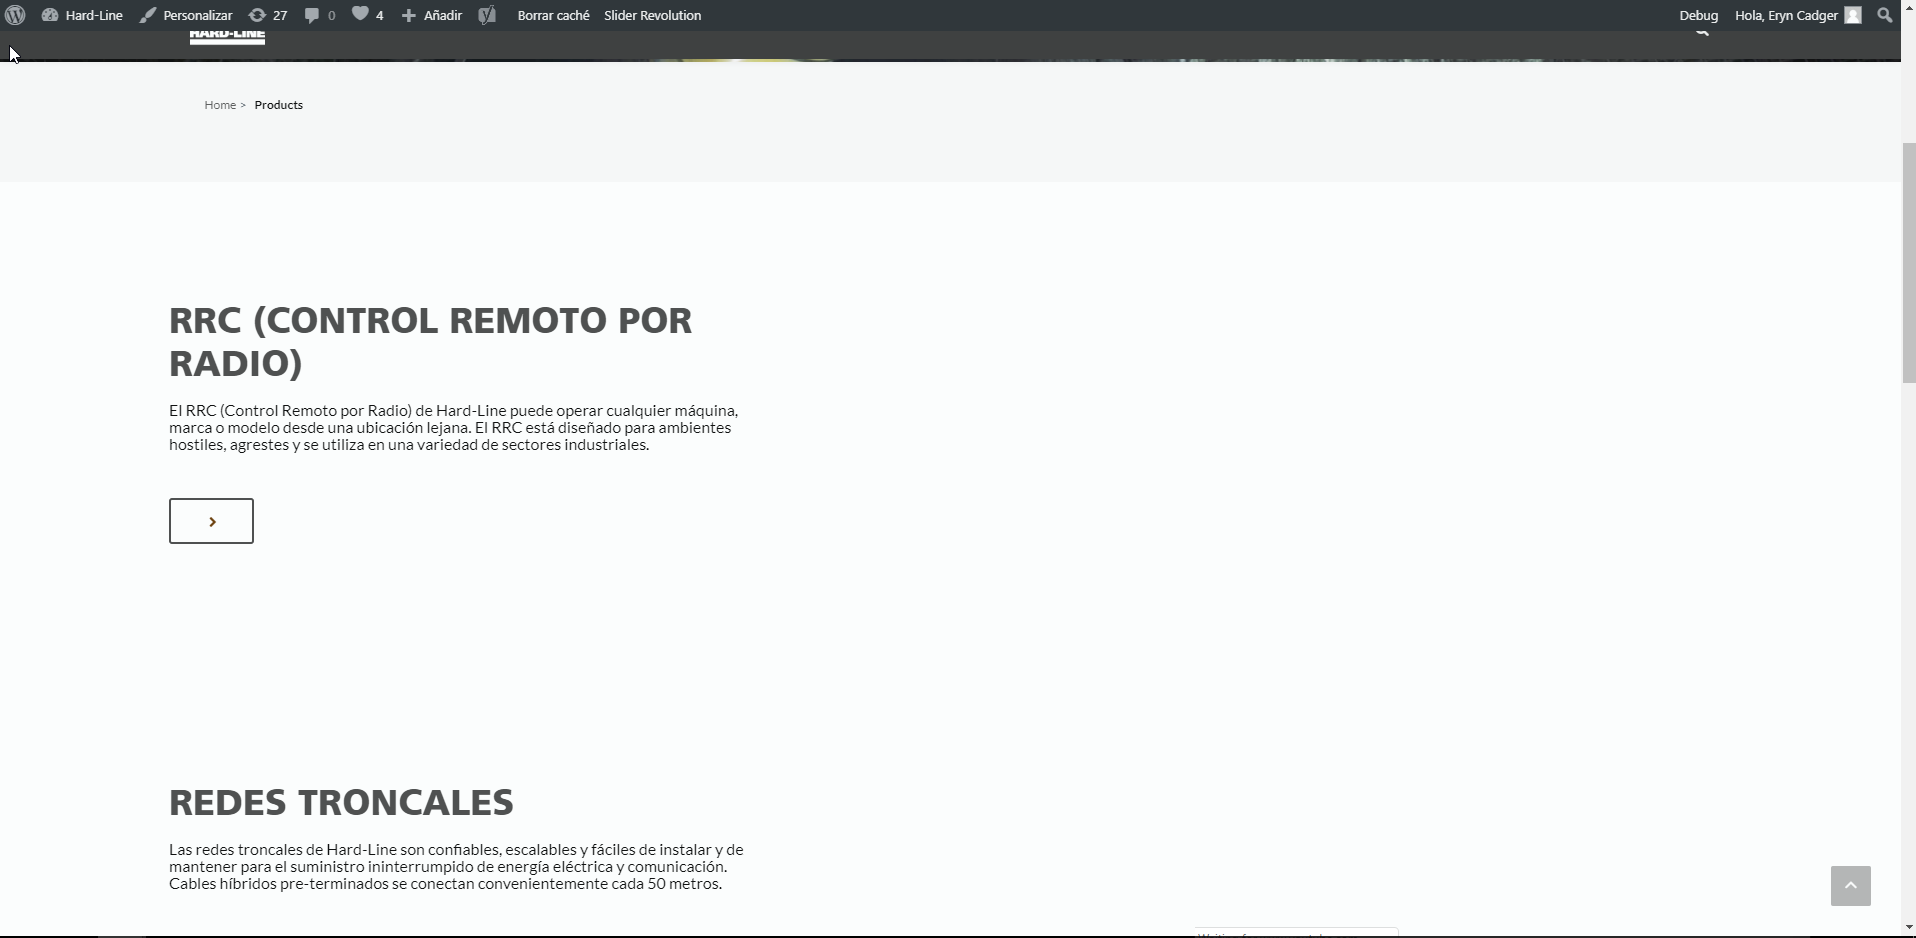 Spanish site - products page.png